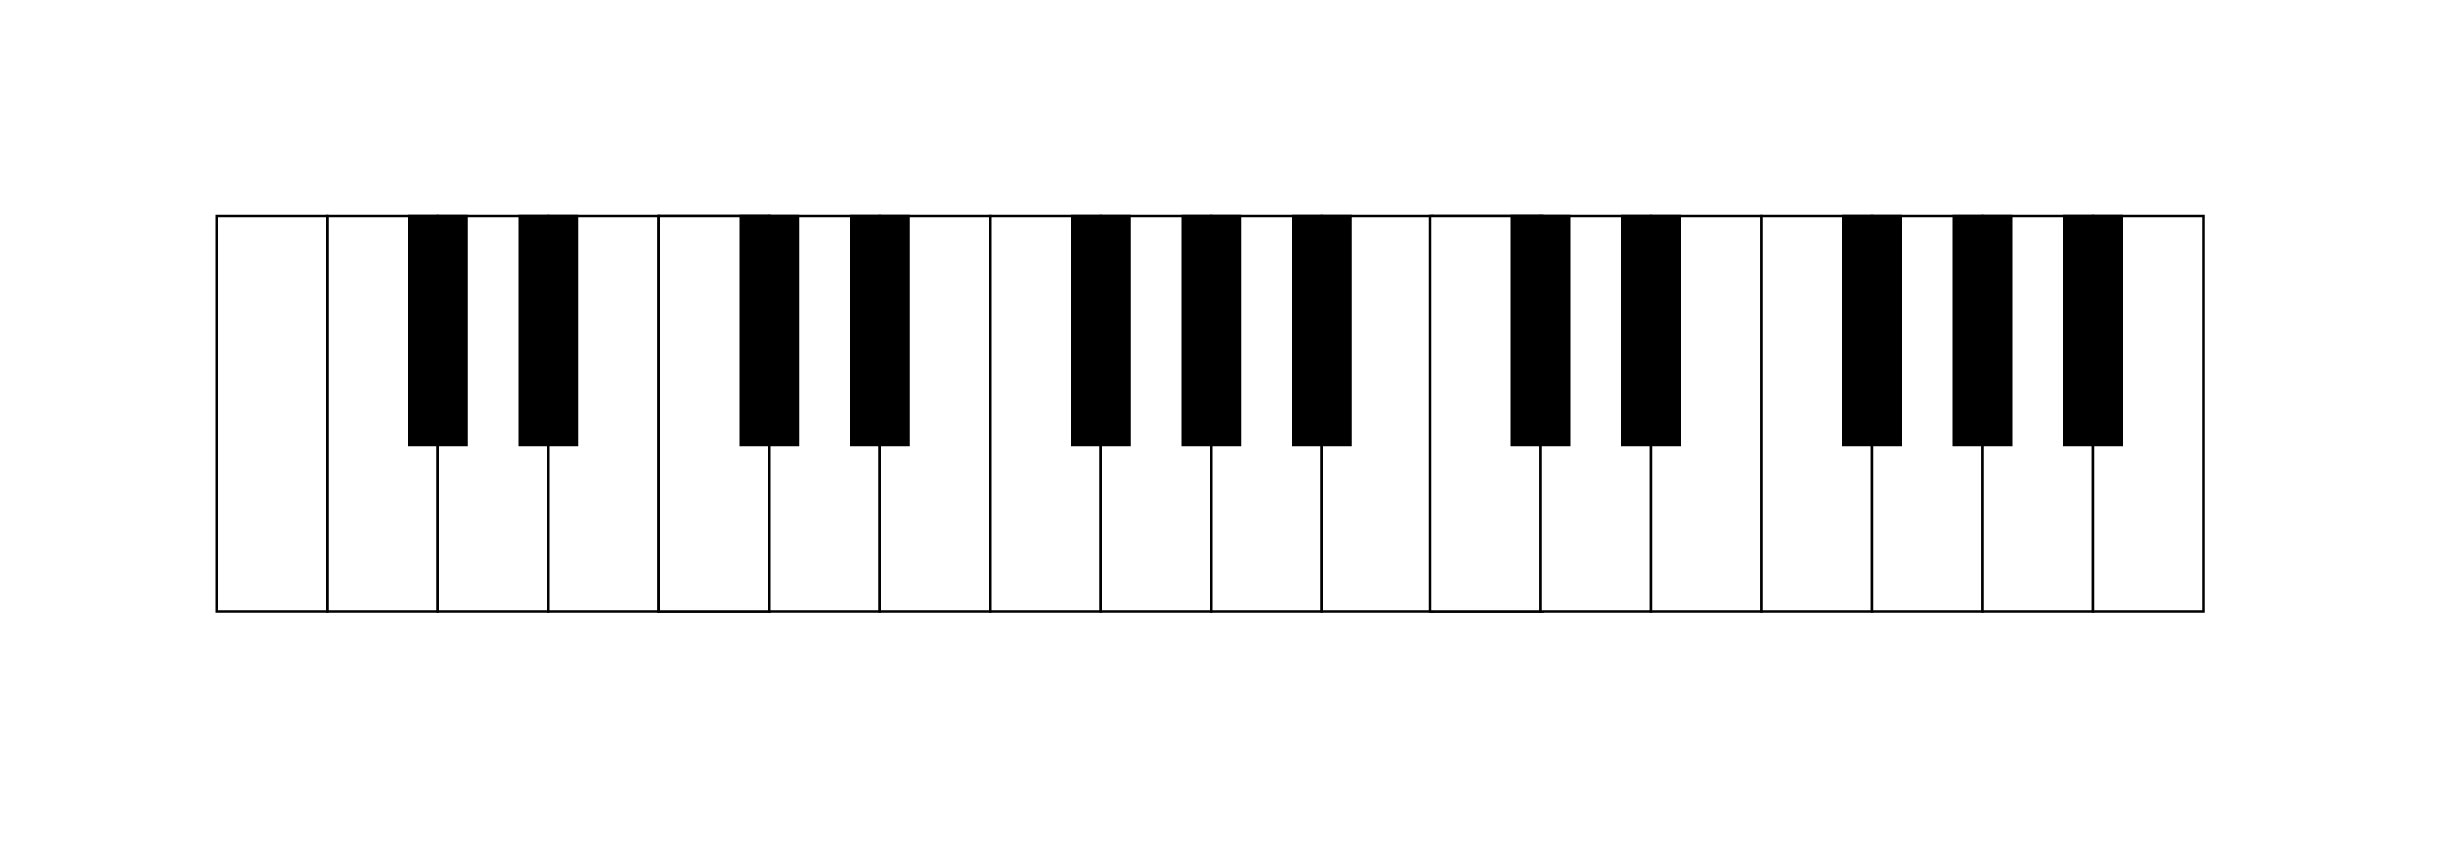 Learn suspended fourth and add4 chords on the piano  B A suspended 4th chord differs from a major or minor chord in that its  B Suspended 4th Piano Chords